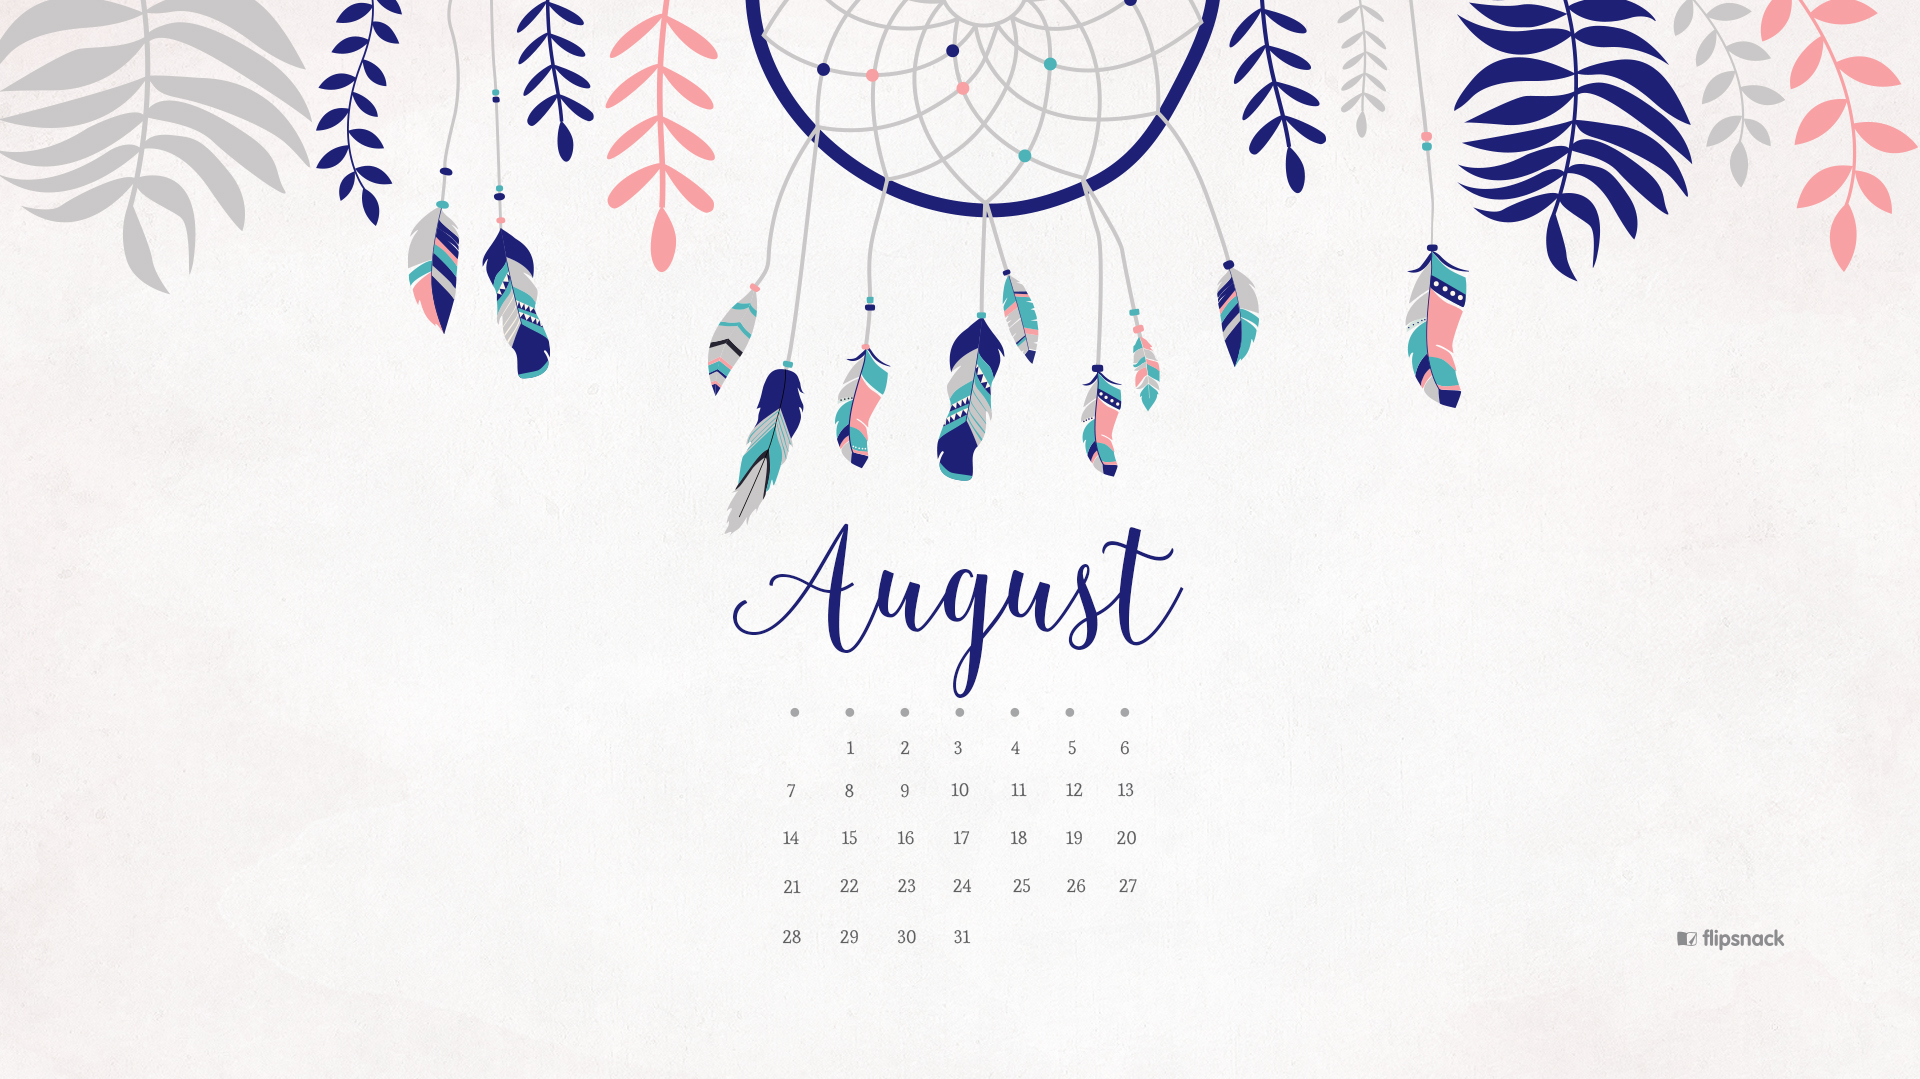 Tumblr Calendar Wallpaper : August free calendar desktop wallpaper